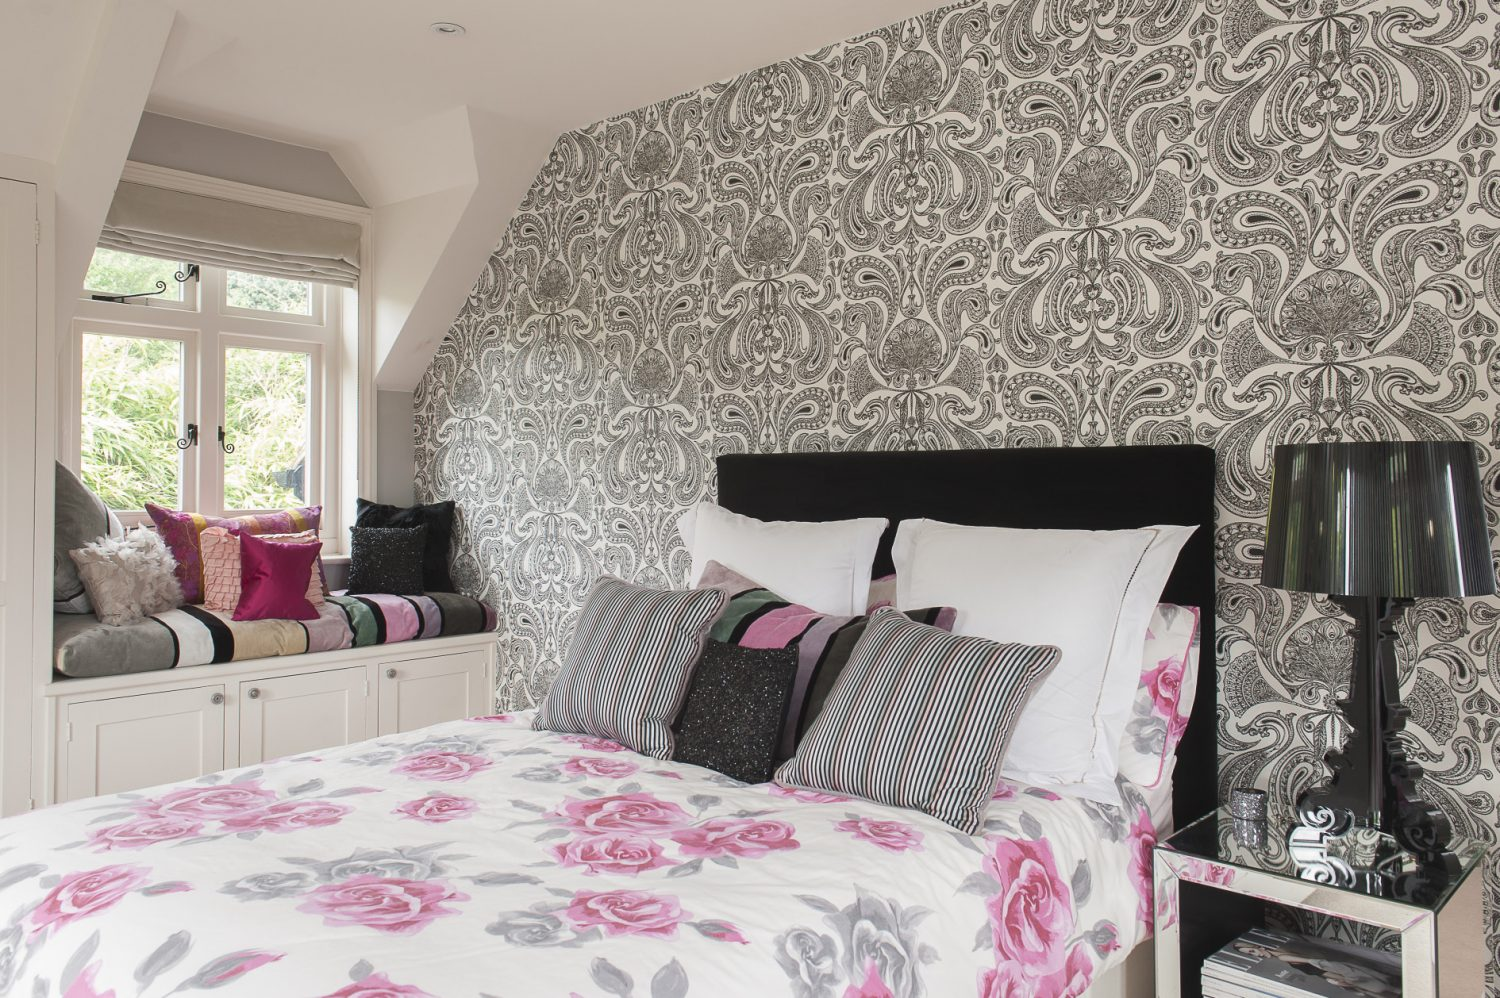 Daughter Georgia has gone for a cross between monochrome and Miami for her bedroom with hot pink accents mixed in with the striking black and white paisley wallpaper by Cole & Son. The bedside lamp is by Kartell